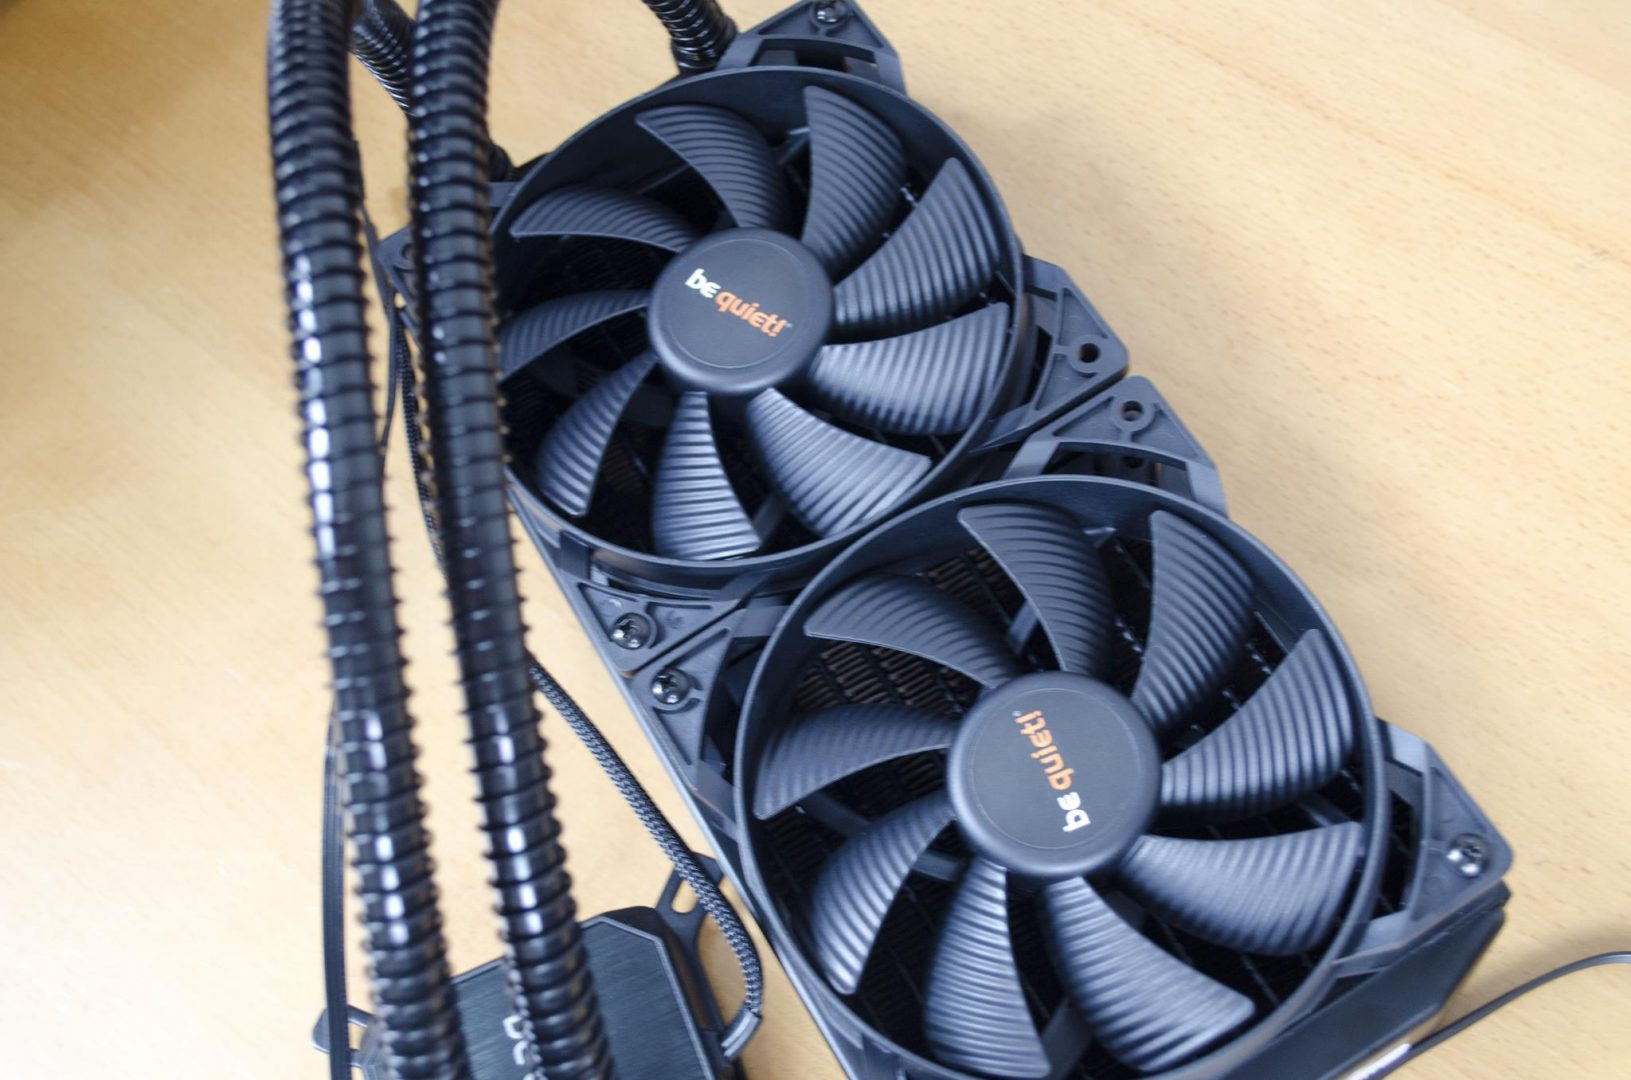 be-quiet-silent-loop-240-mm-aio-cpu-cooler-review_14